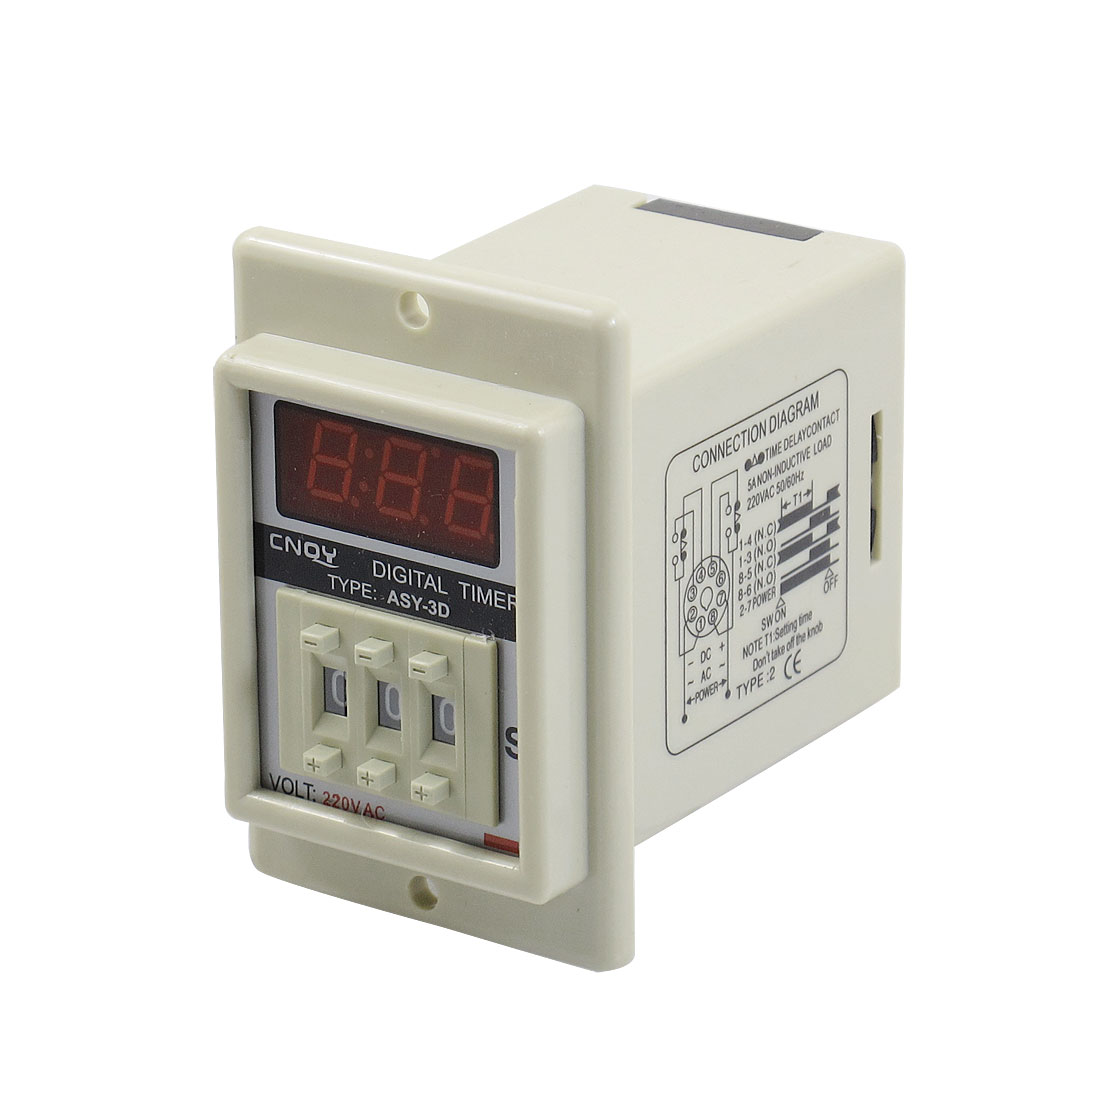 AC 220V 8 Pin 1-999 Second Digital Timer Time Delay Relay Beige ASY-3D